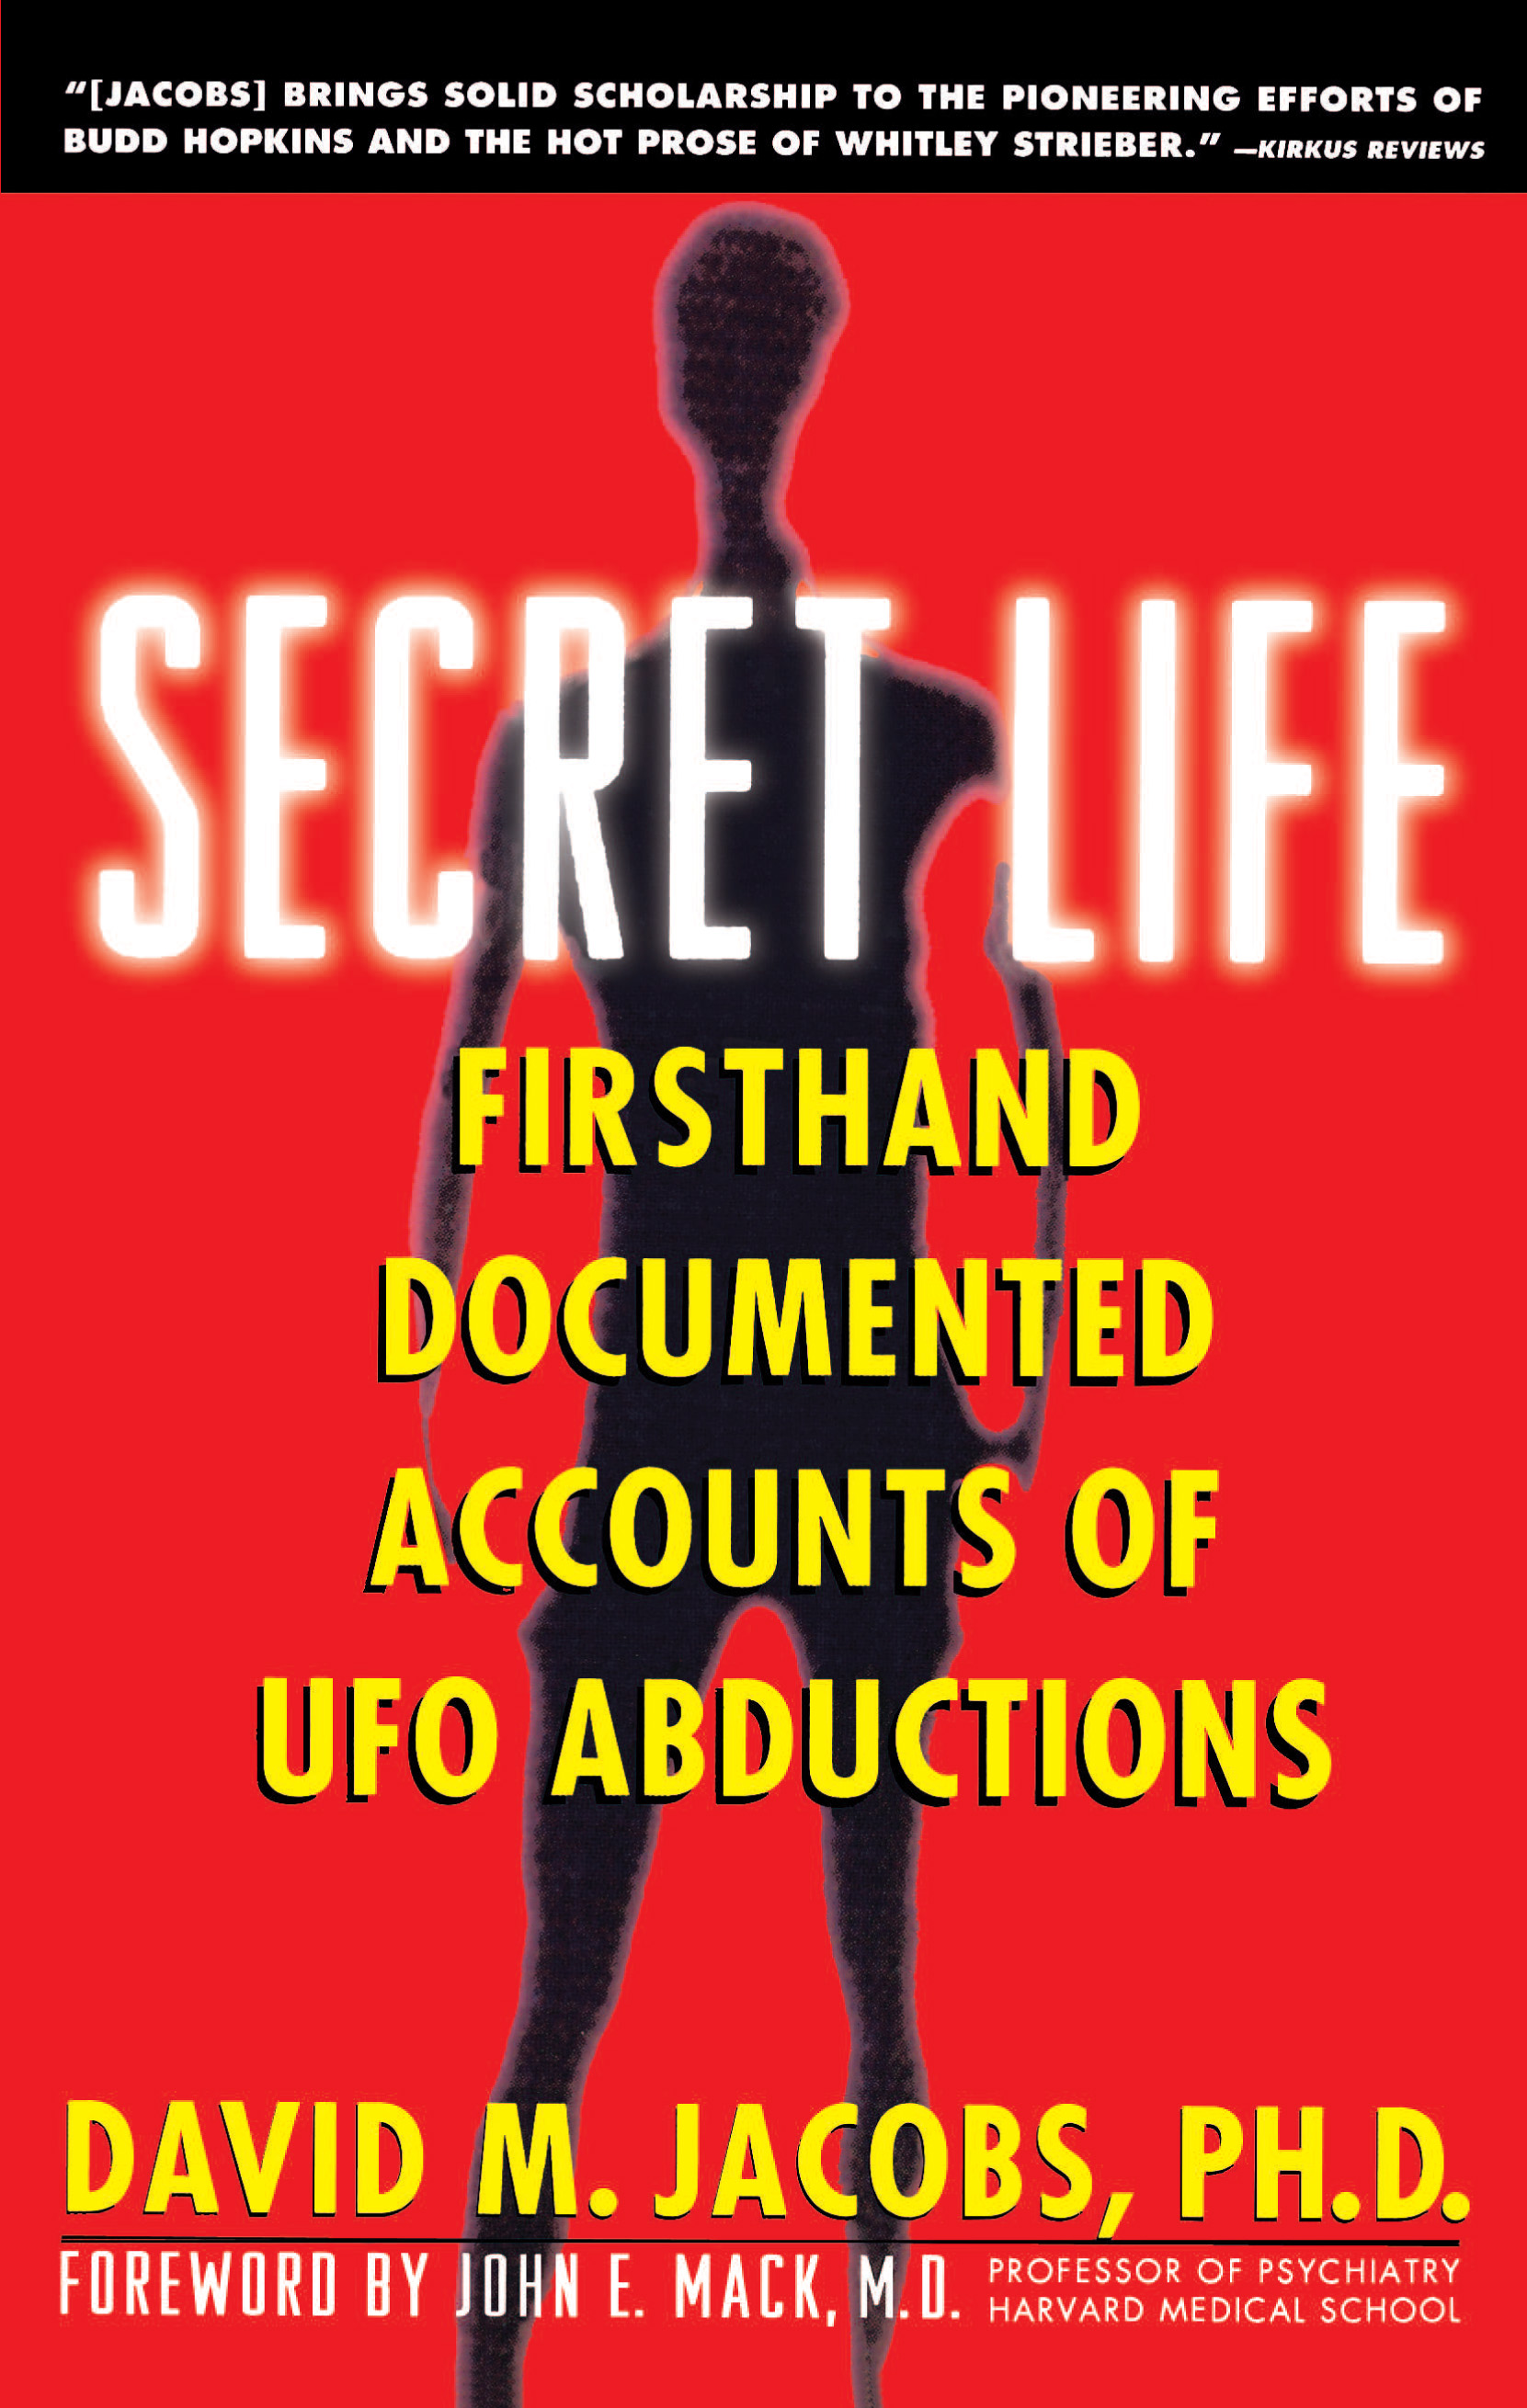 'Secret Life: Firsthand, Documented Accounts of UFO Abductions' by David M. Jacobs